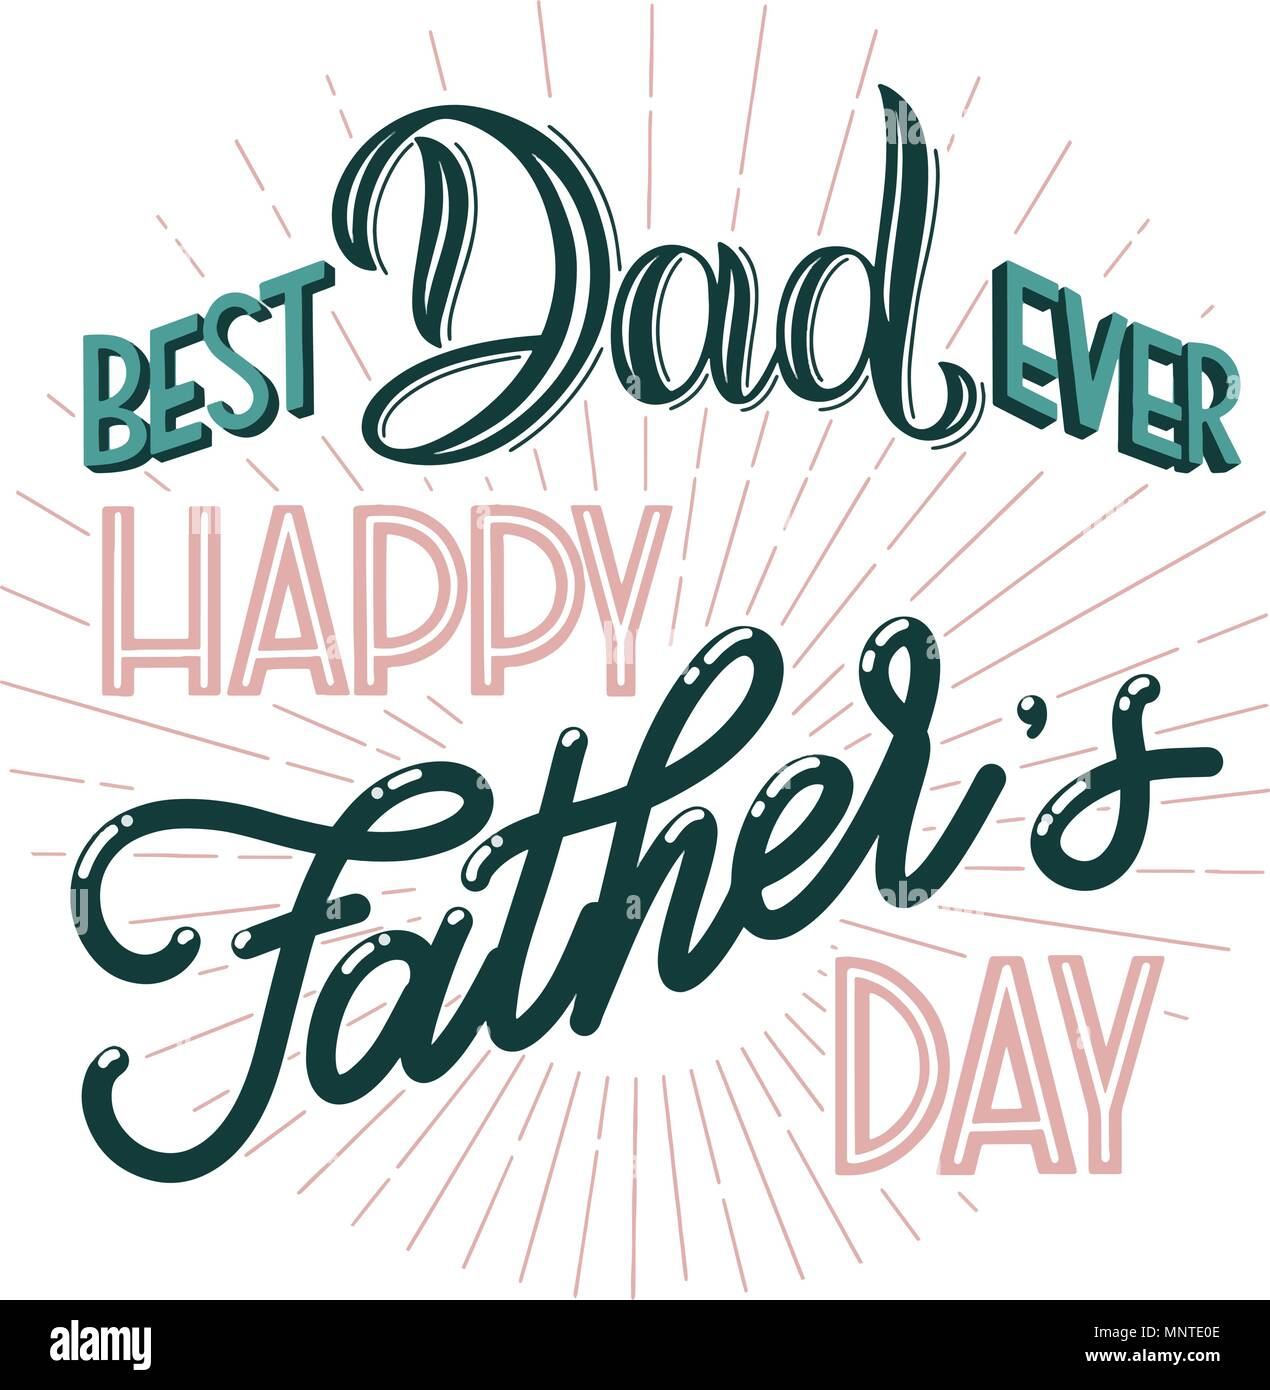 Happy Father Day Lettering Greeting Card Design Hand Drawn Text Elements For Invitations Posters Cards T Shirt